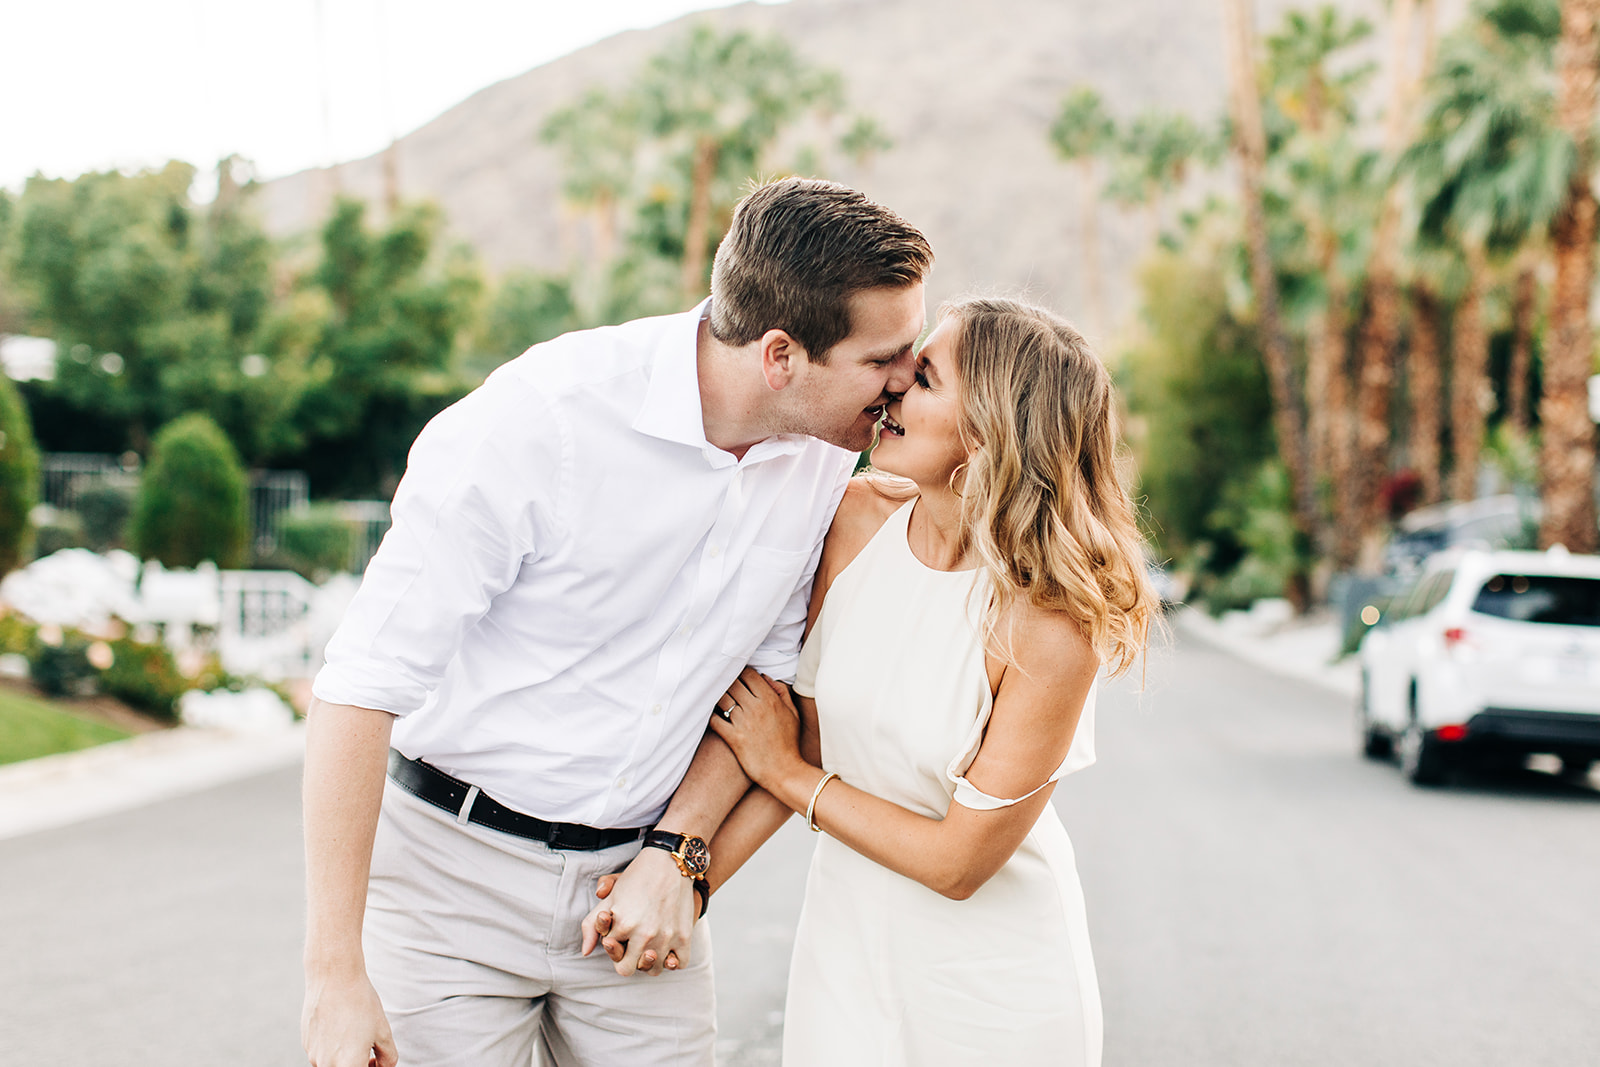 Paulina-Drew_Palm-Springs-Engagement-Photos_Clarisse-Rae_Southern-California-Wedding-Photographer-11